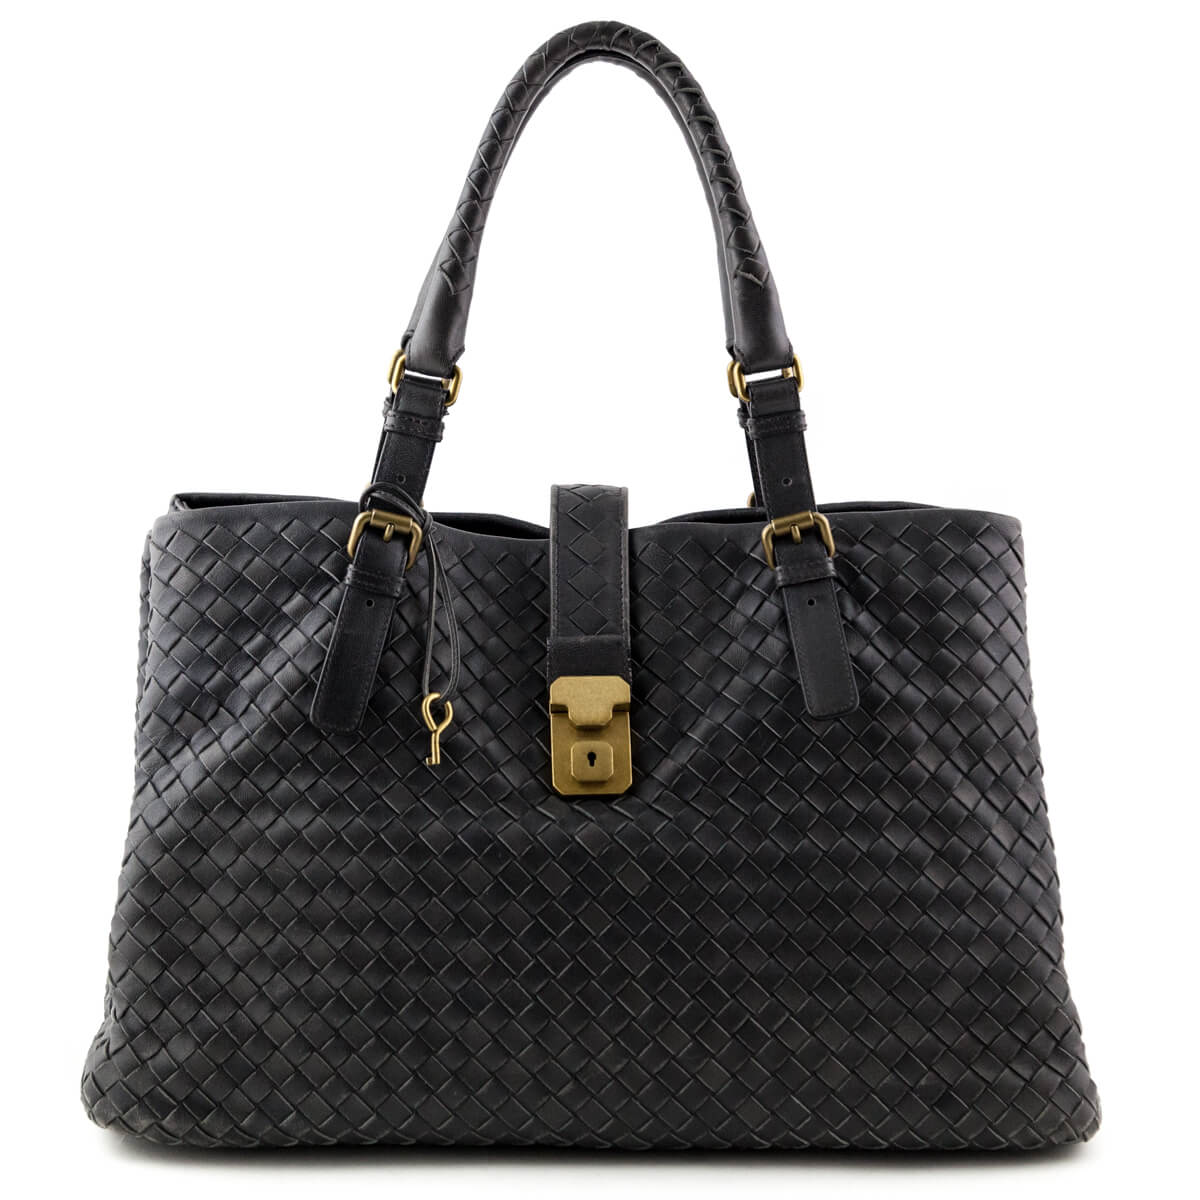 Bottega Veneta Ferro Intrecciato Large Roma Bag - LOVE that BAG - Preowned  Authentic Designer Handbags ... 2aa3ea1bd8c64